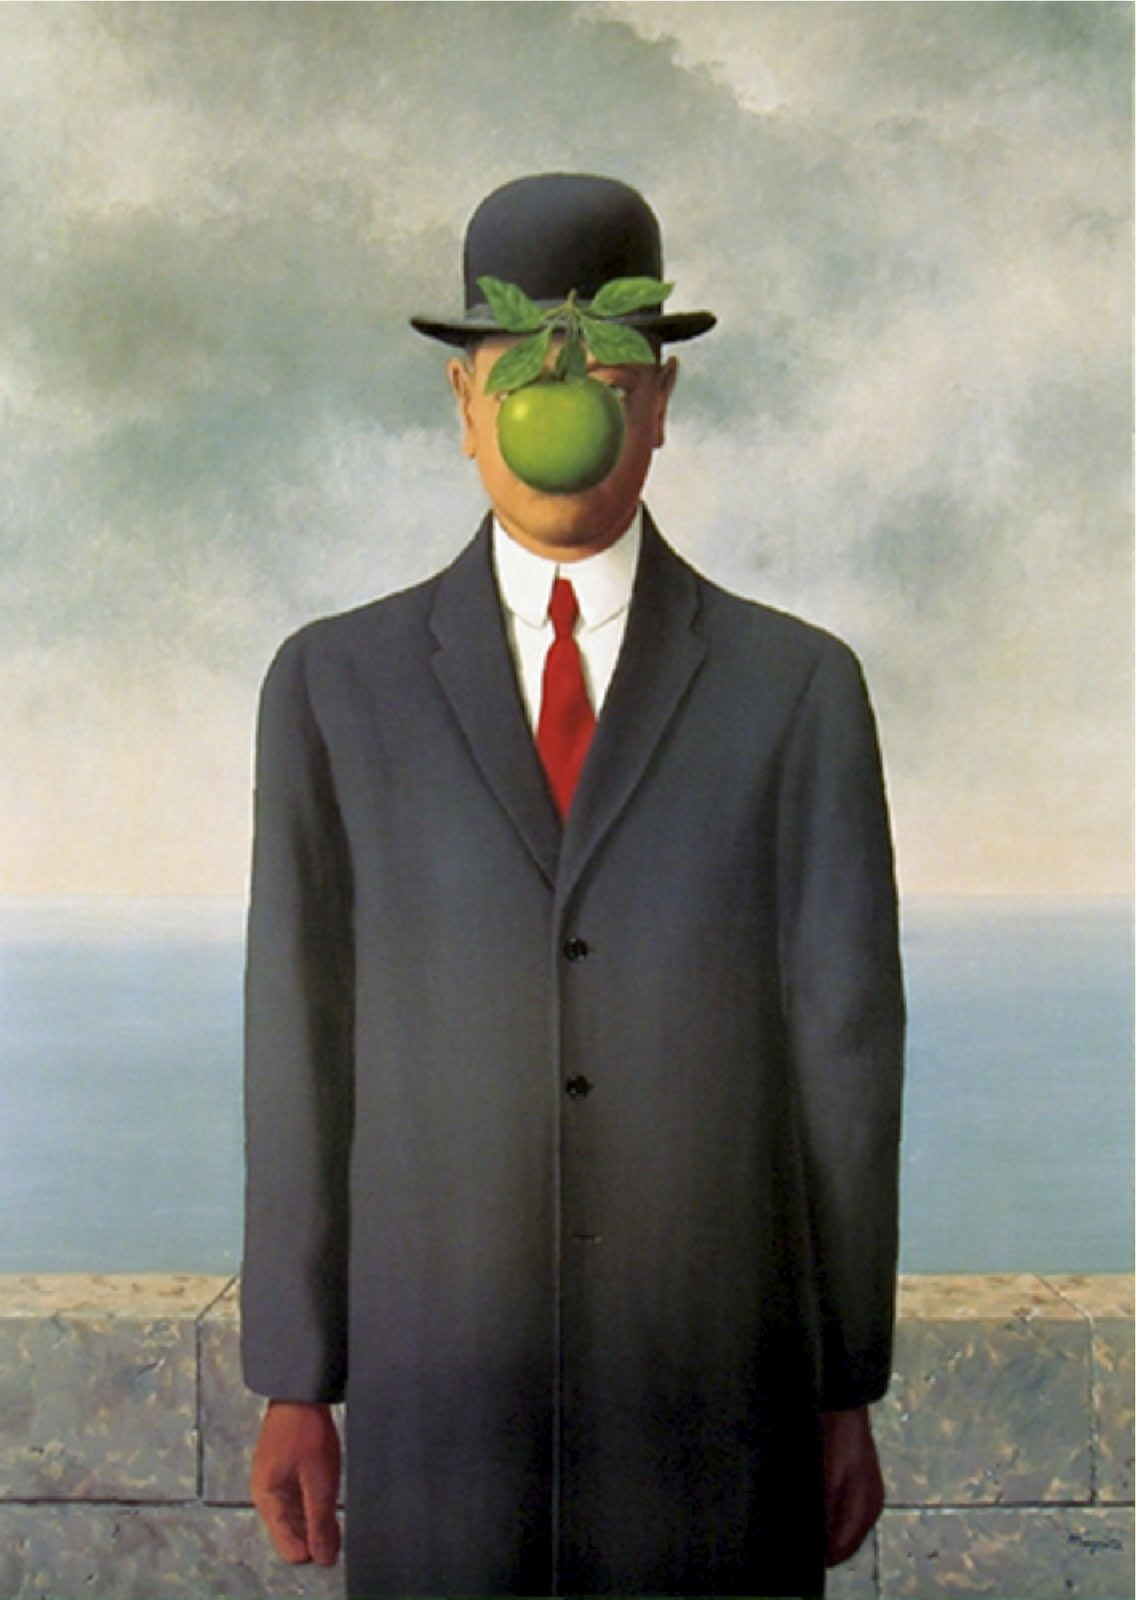 Son of Man - René Magritte